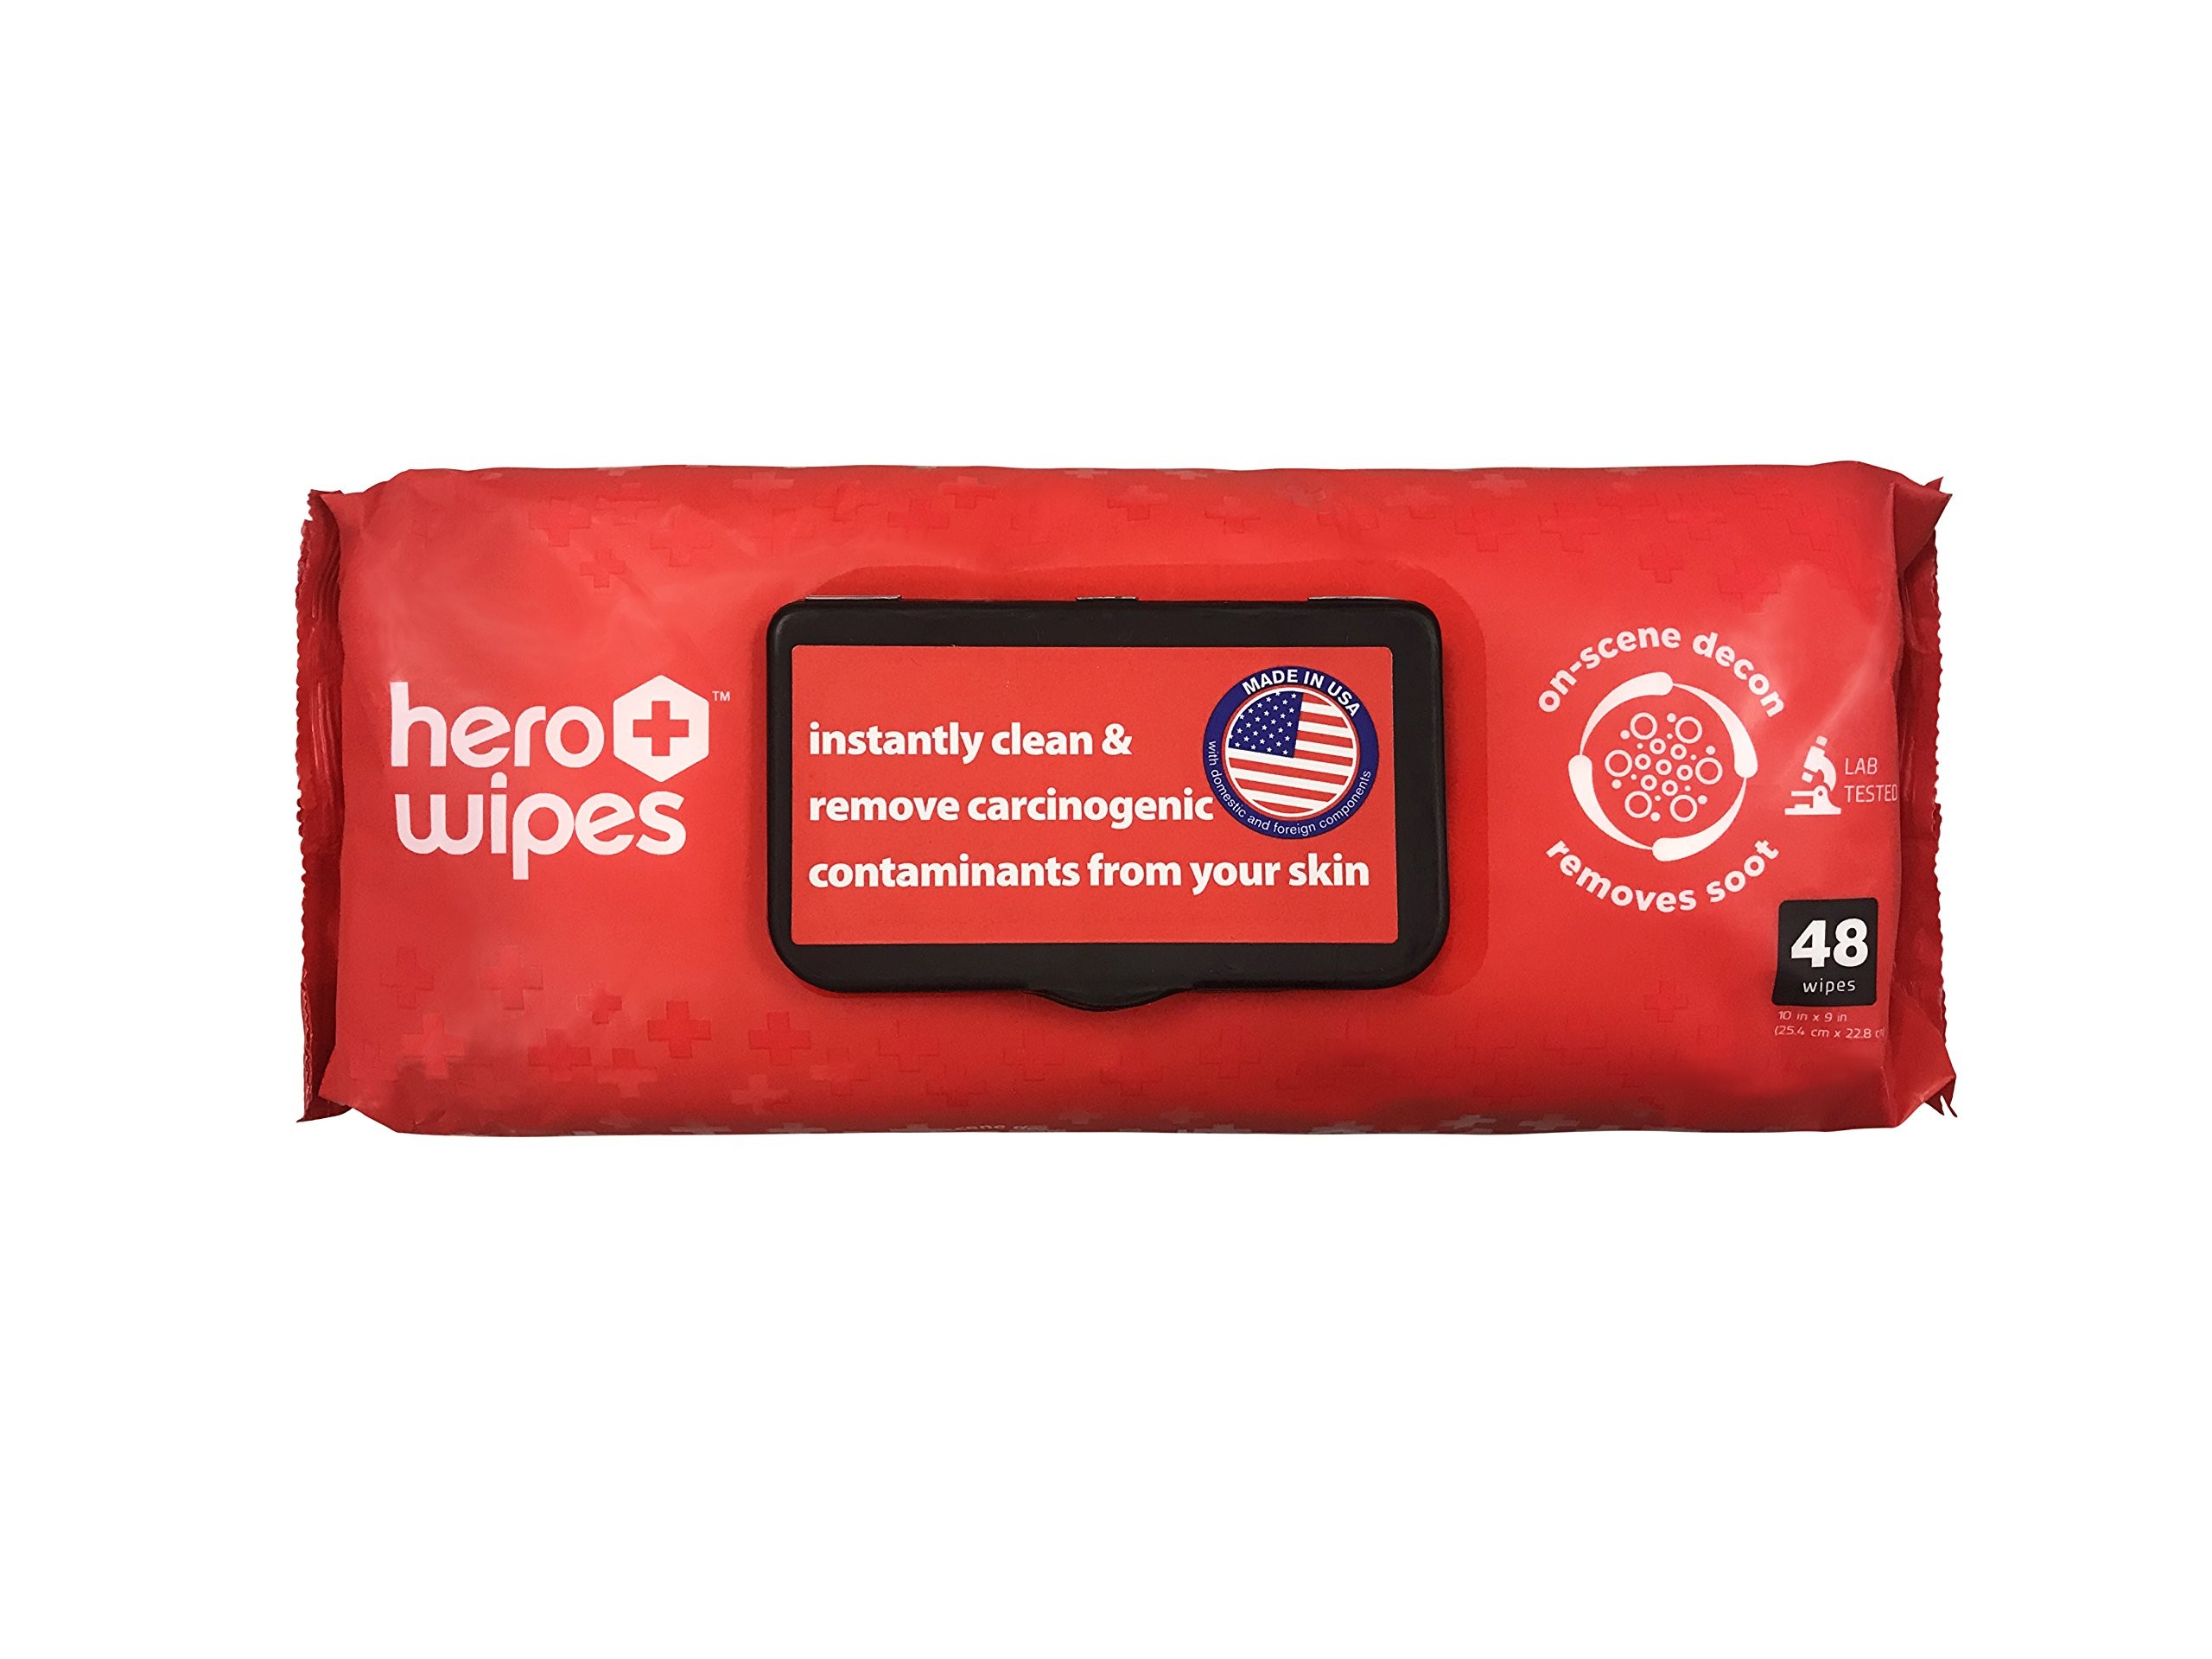 Hero Wipes On Scene Decon Body Wipes for Firefighters (48 Count) - Removes 98% of Carcinogens - All Natural Alcohol Free Formula - Removes Soot, Smoke and Toxins - Made in USA